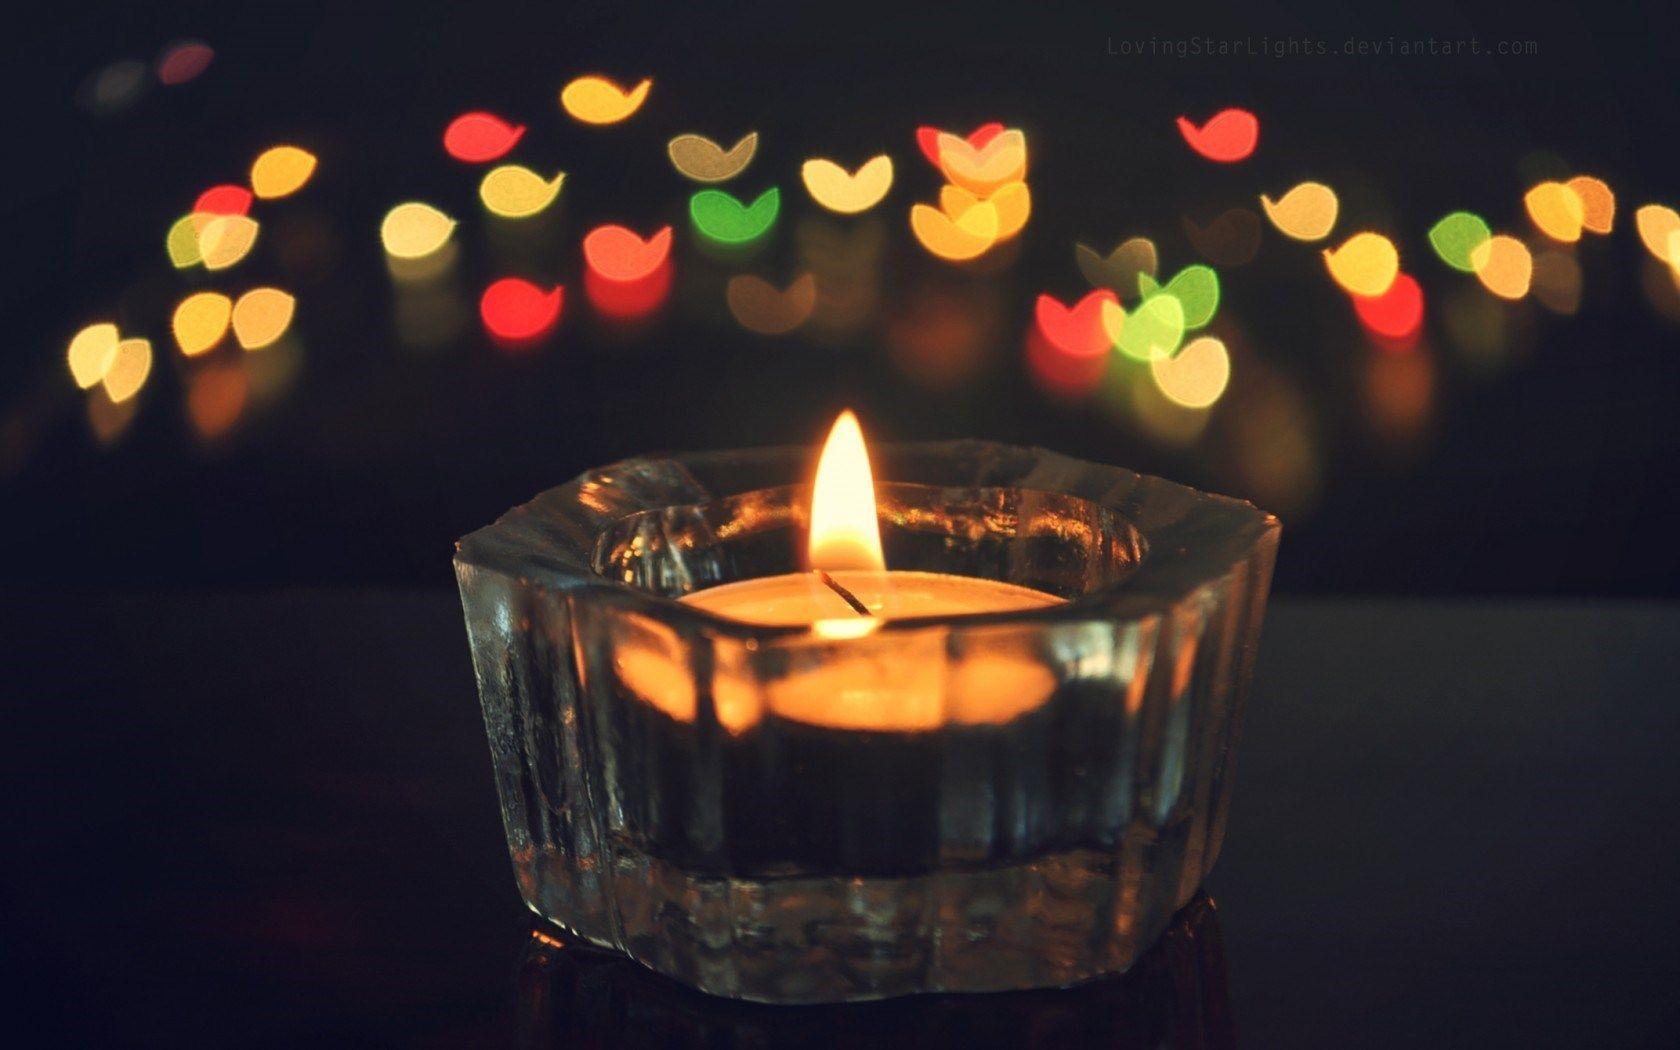 Candles Hd Wallpapers Candle Backgrounds And Images: Candles Wallpapers